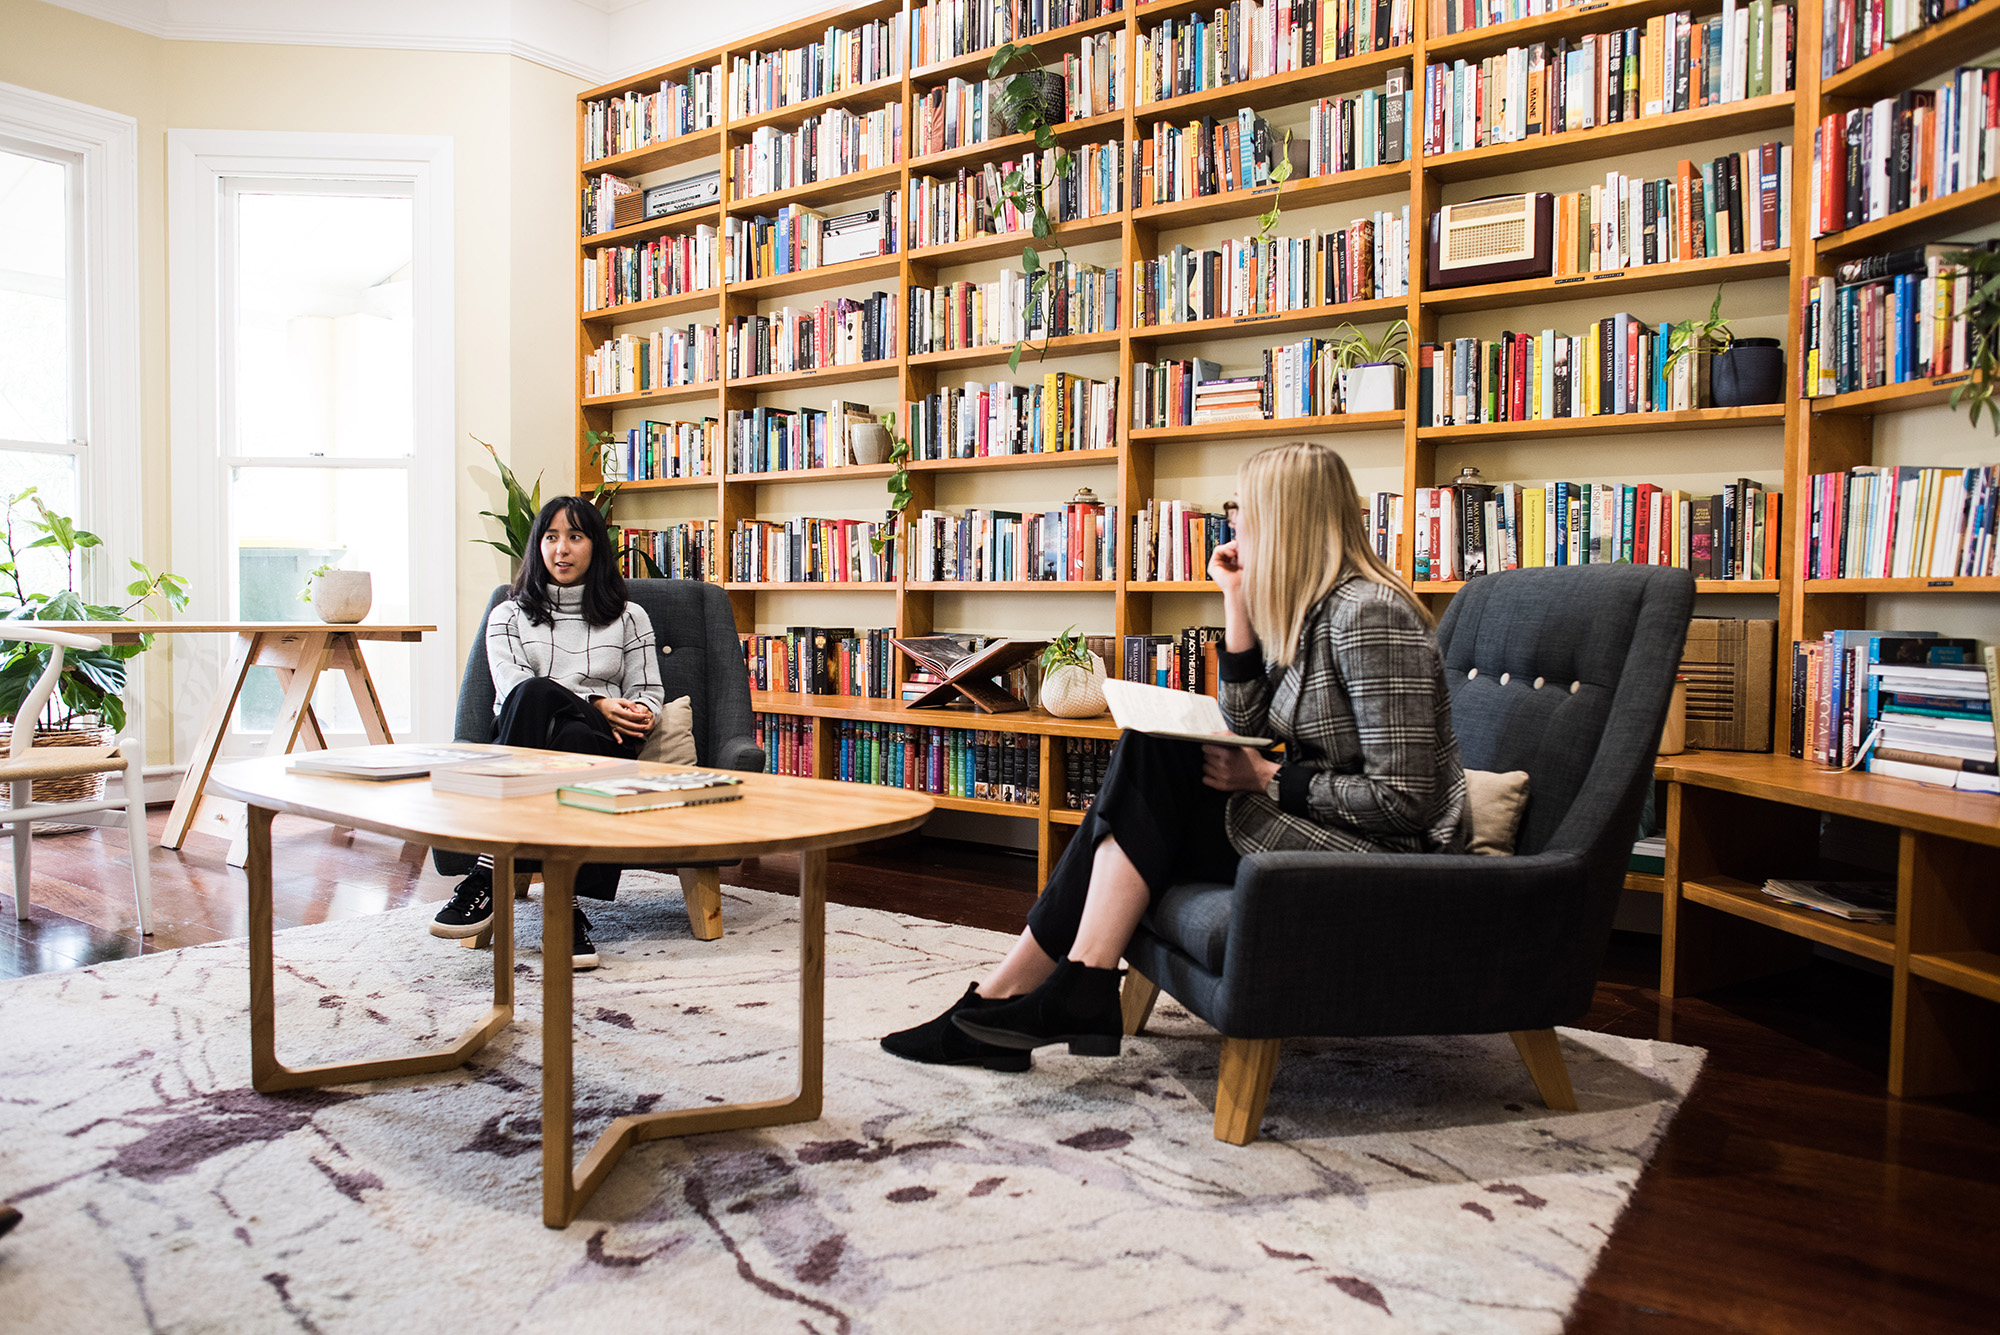 Photo of the Centre for Stories' Reading Room. It features floor to ceiling bookshelves covered with books and pot plants. Two women sit in armchairs in front of the shelves.